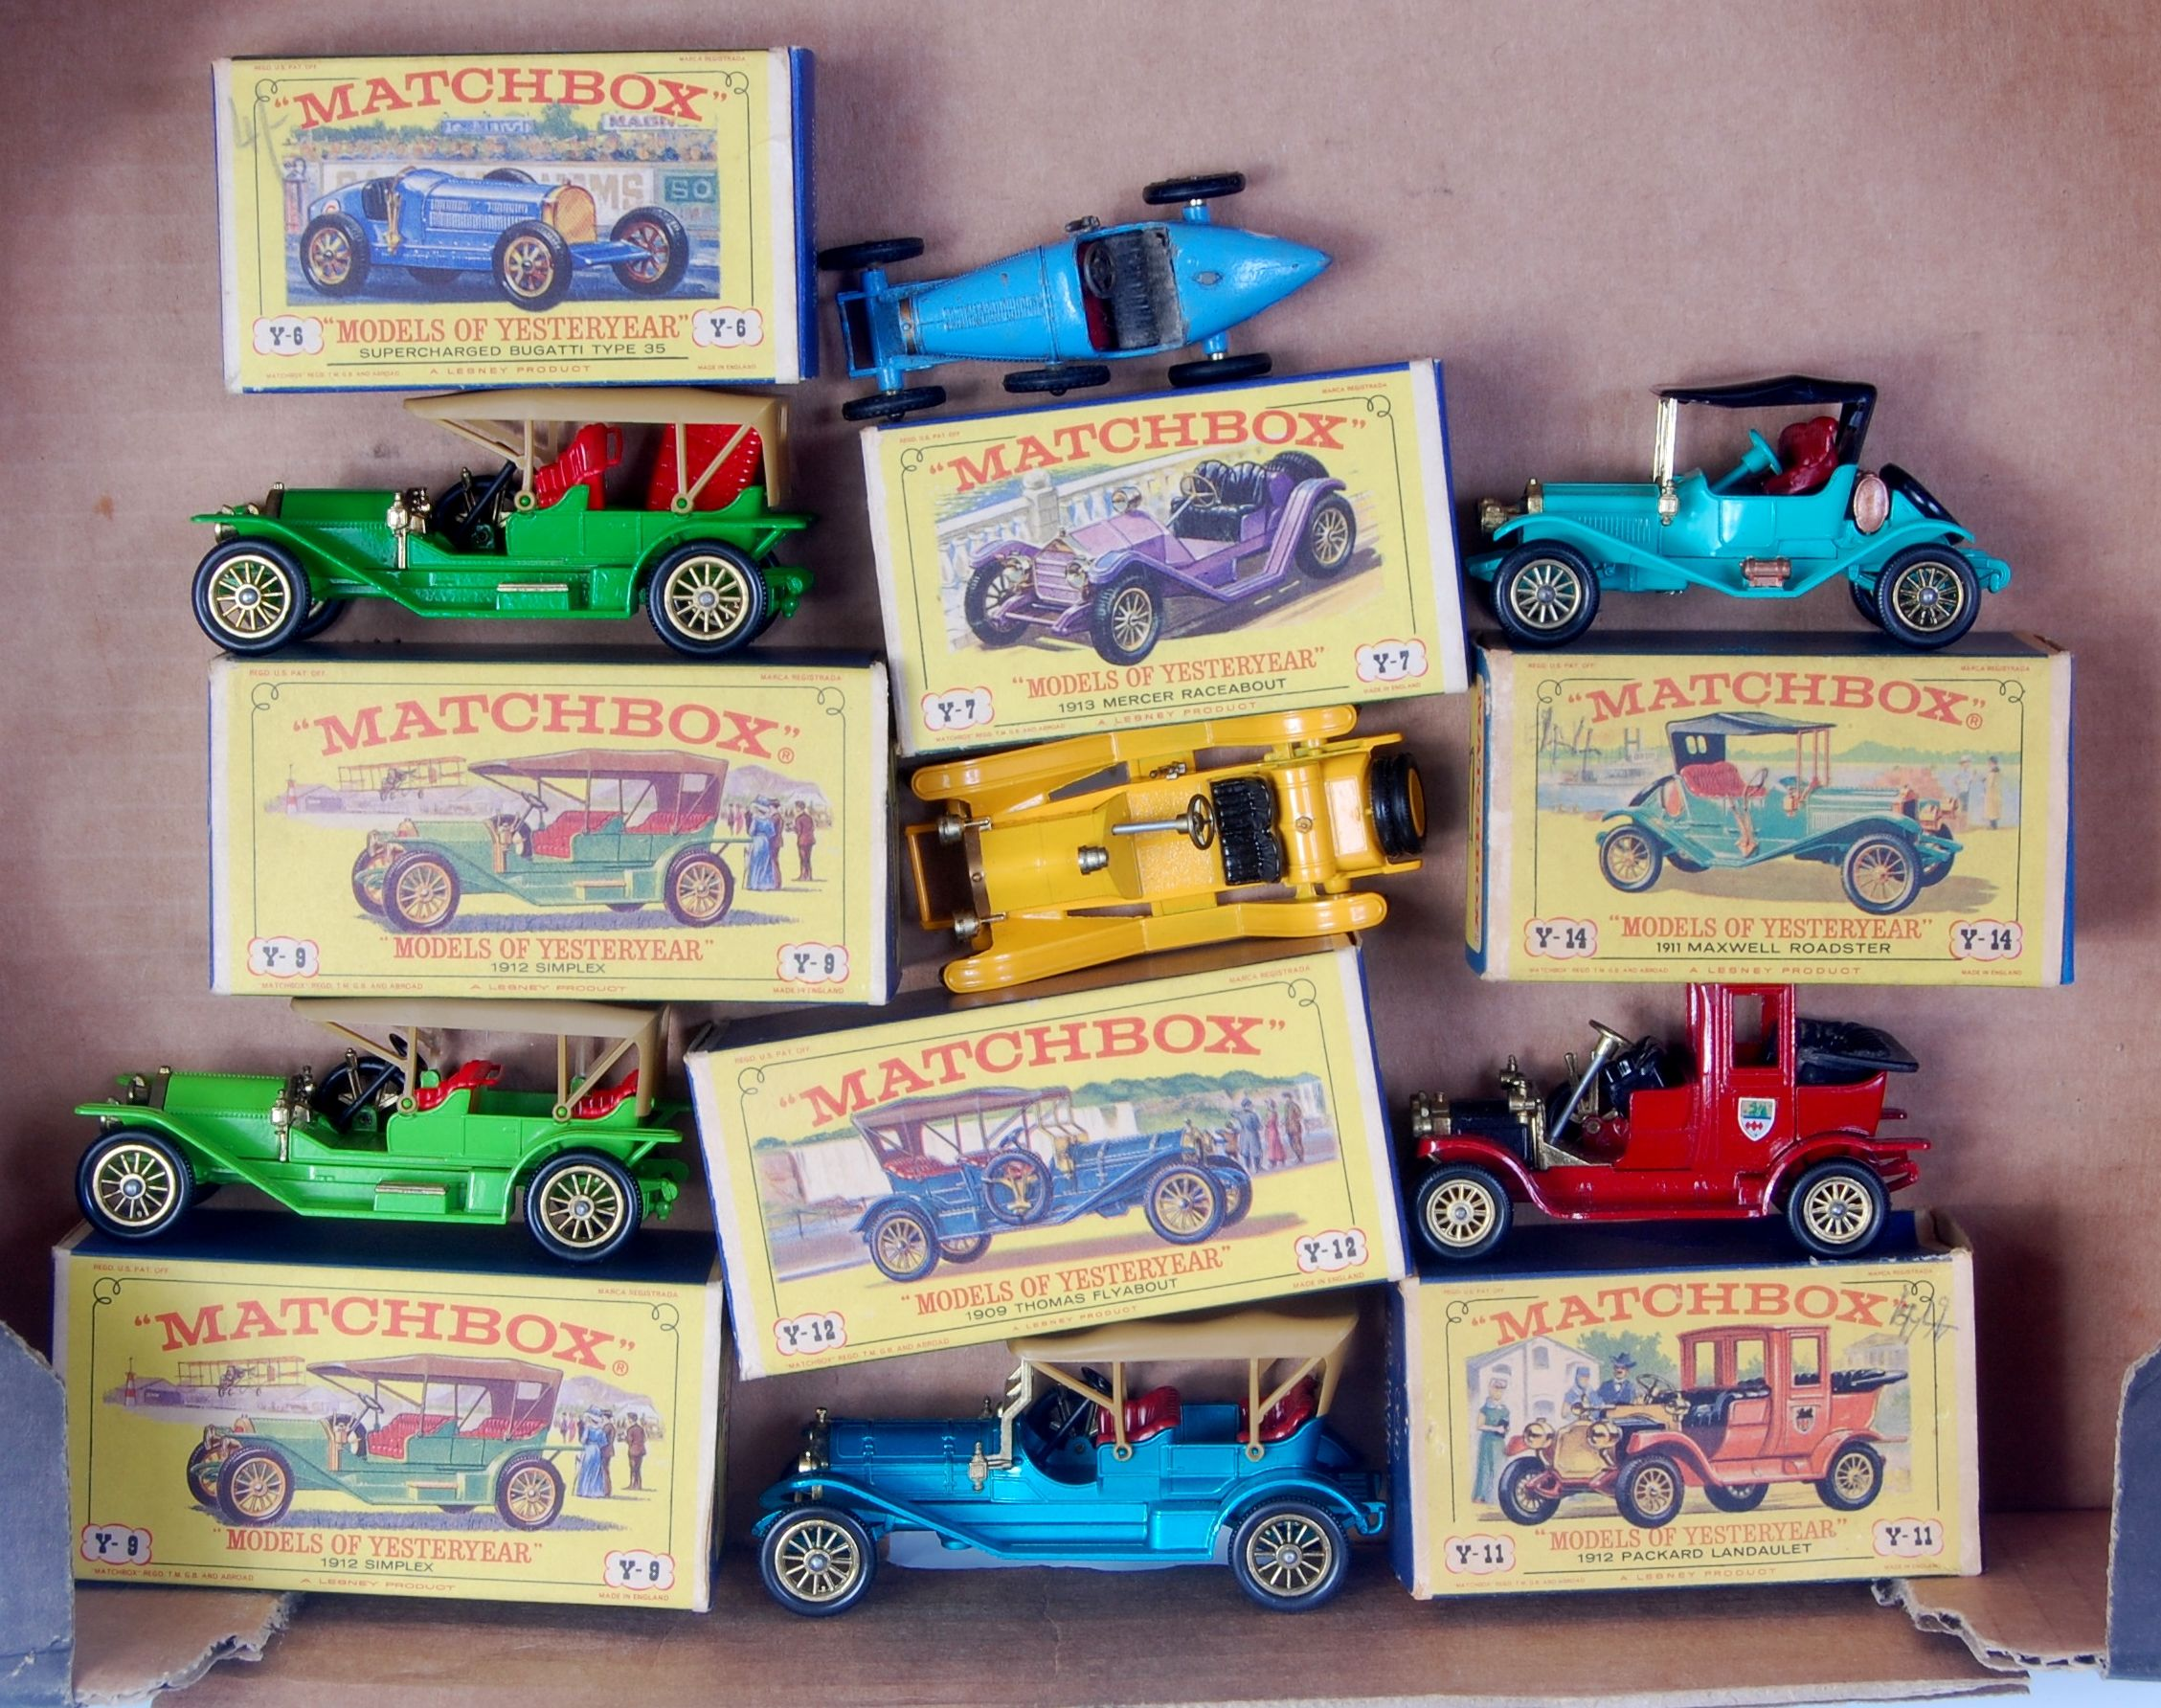 Lot 2303 - Matchbox models of yesteryear D and E type boxed group, 7 boxed models, 1 example is play worn, all